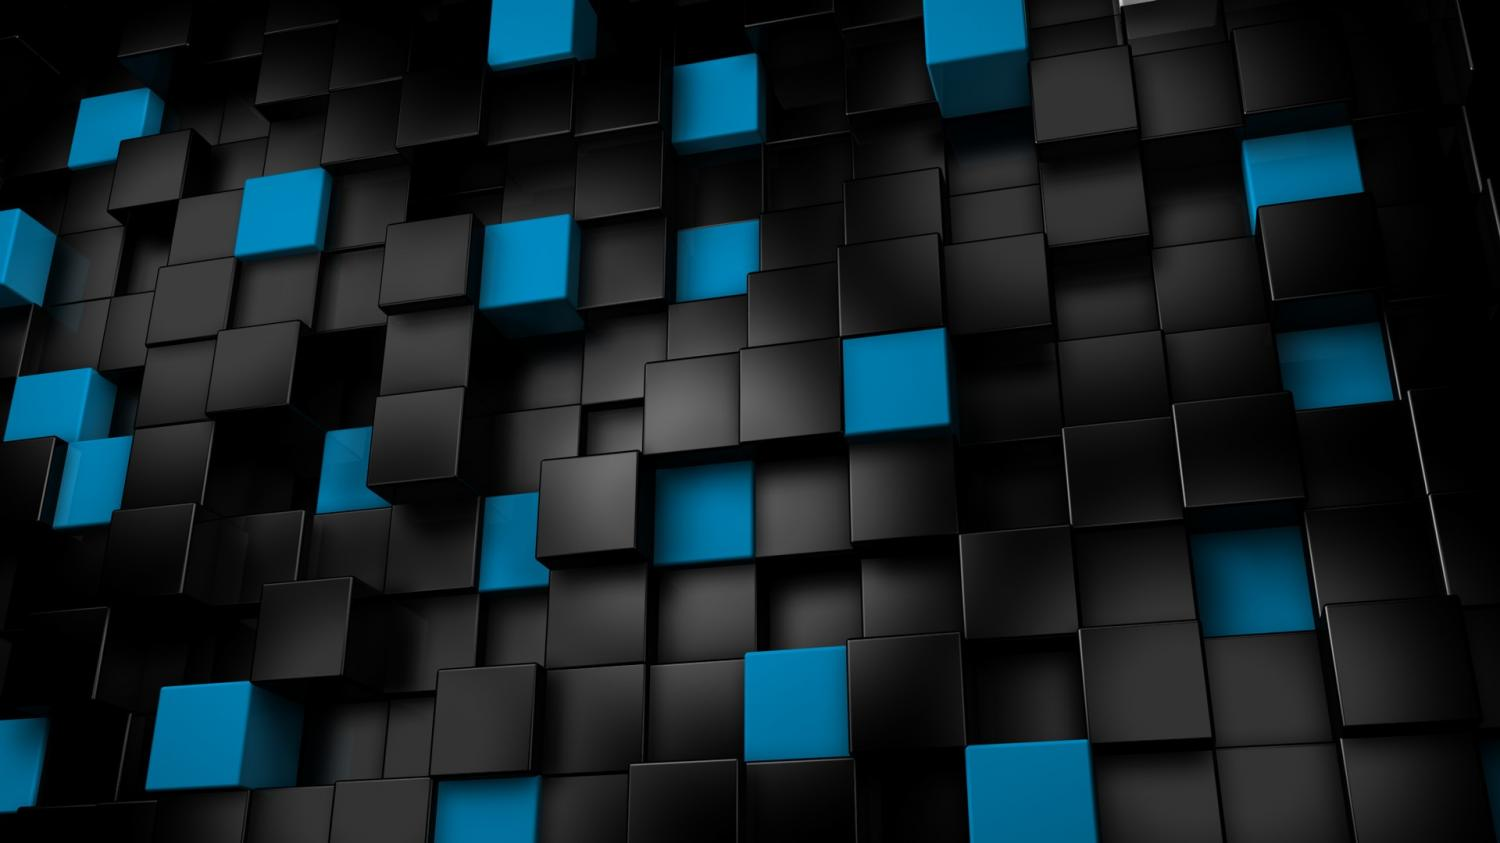 Blue 3D Cubes Wallpaper for Android   Android Live Wallpaper Download 1500x843